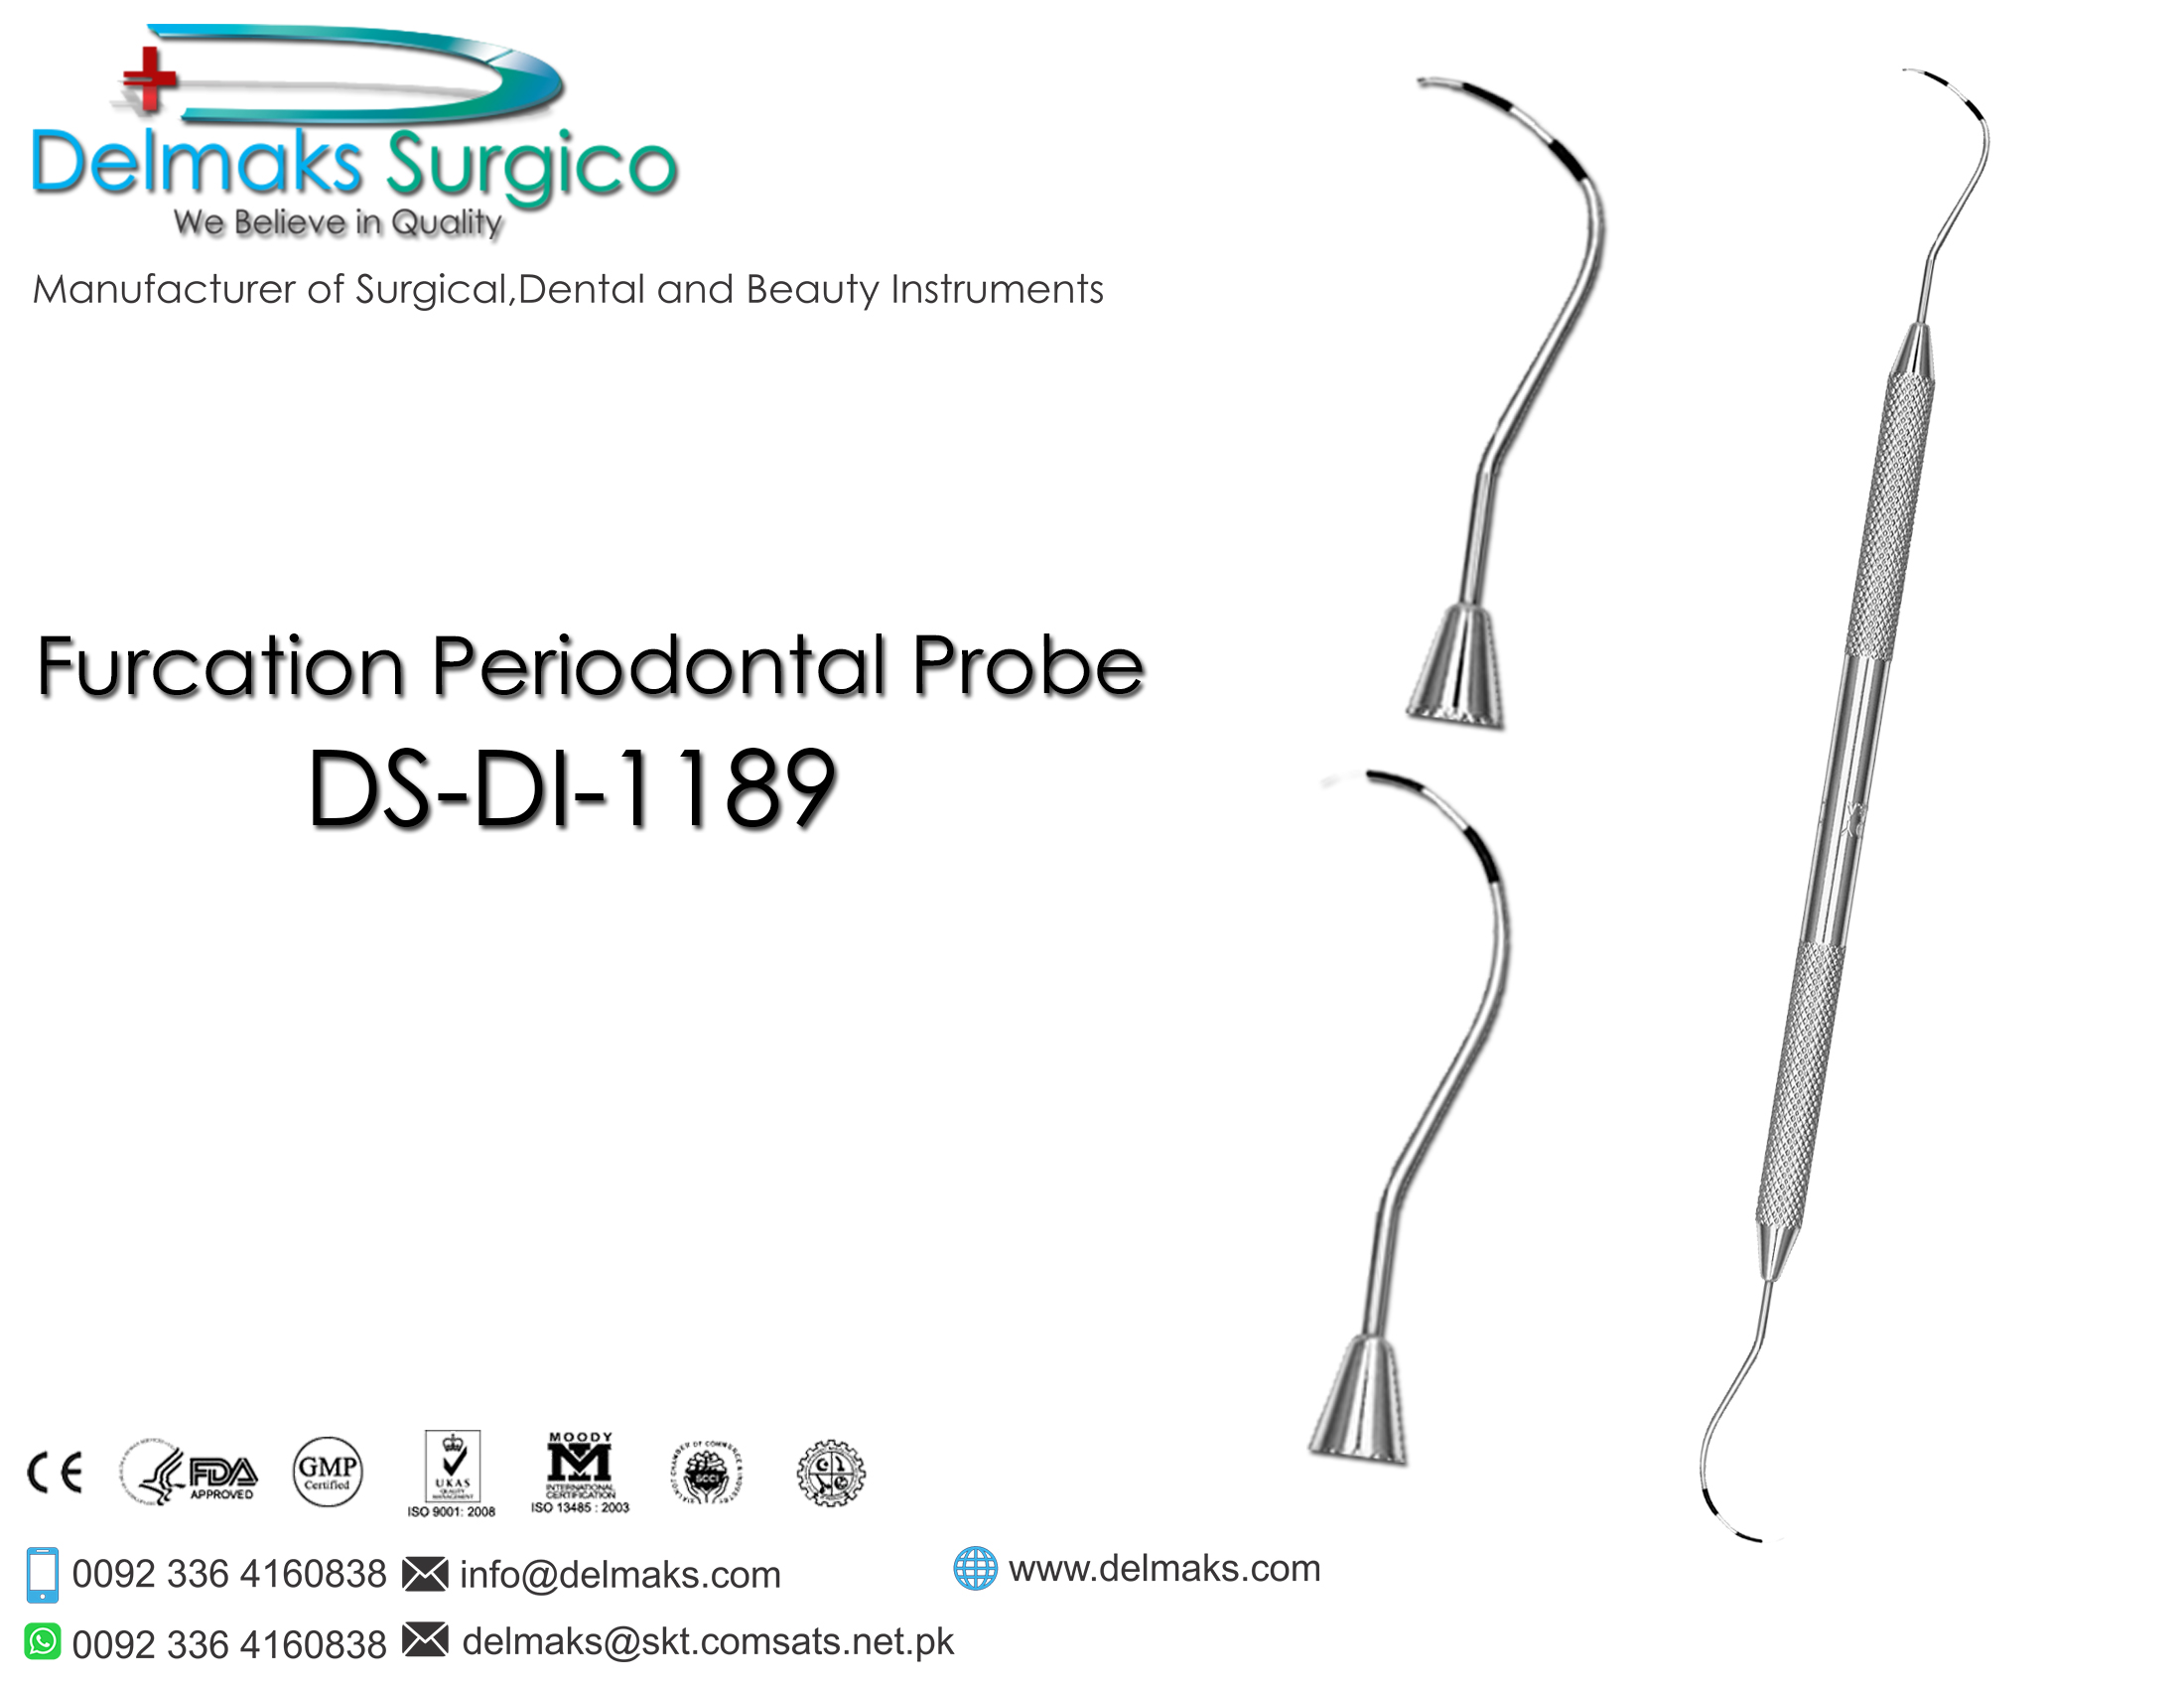 Furcation Periodontal Probe-(Hygiene and Periodontal Instruments)-Dental Instruments-Delmaks Surgico